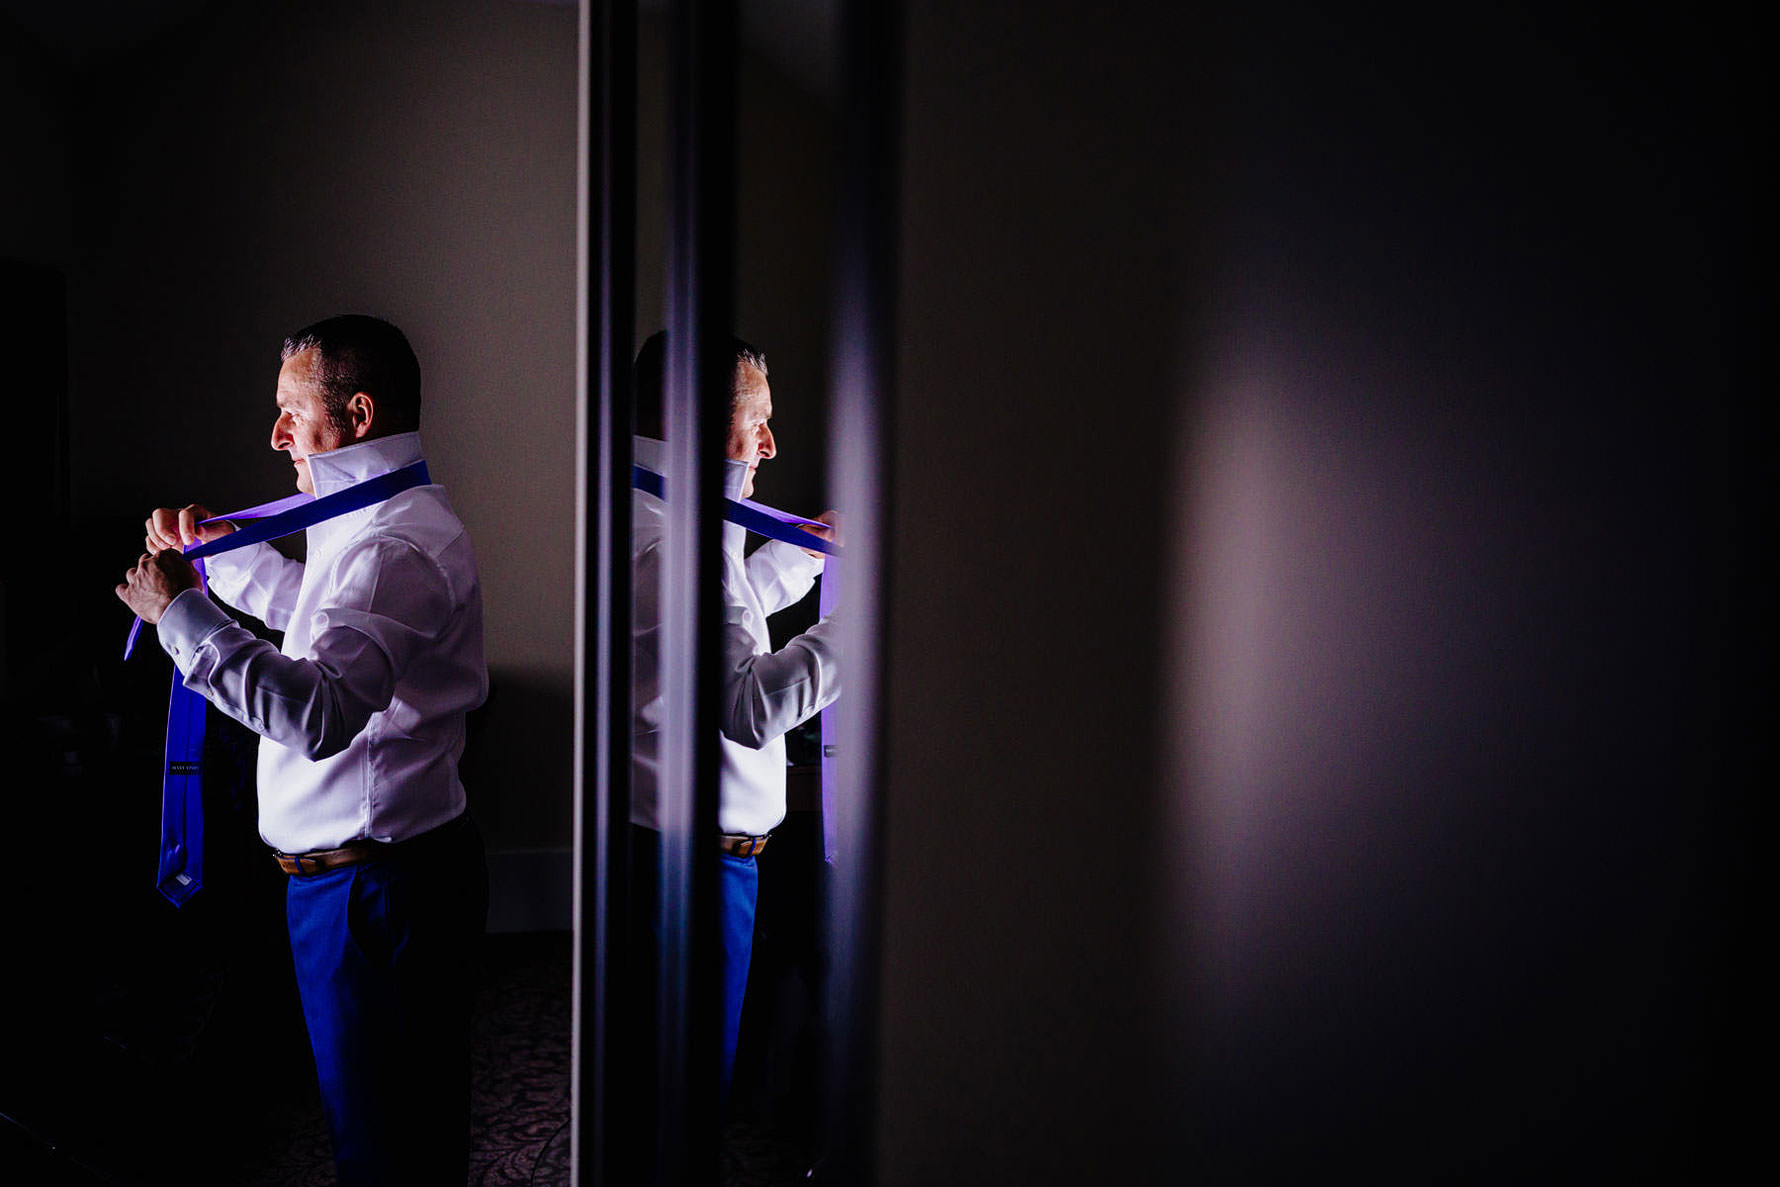 a reflection of a groom